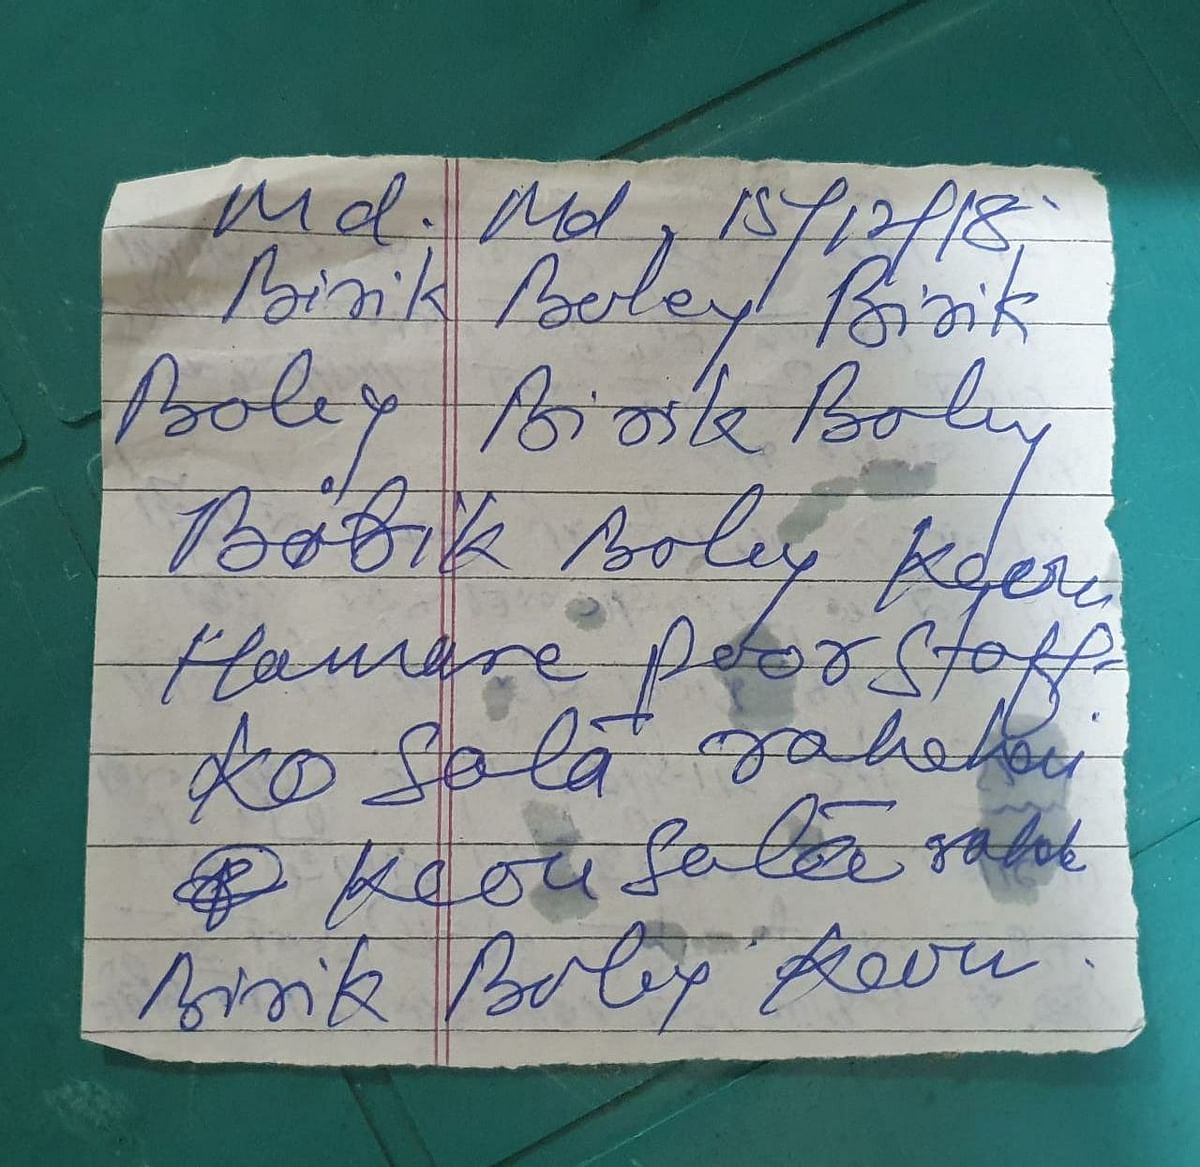 Hand-written notes from the deceased diary where she had mentioned the name of the managing director repeatedly